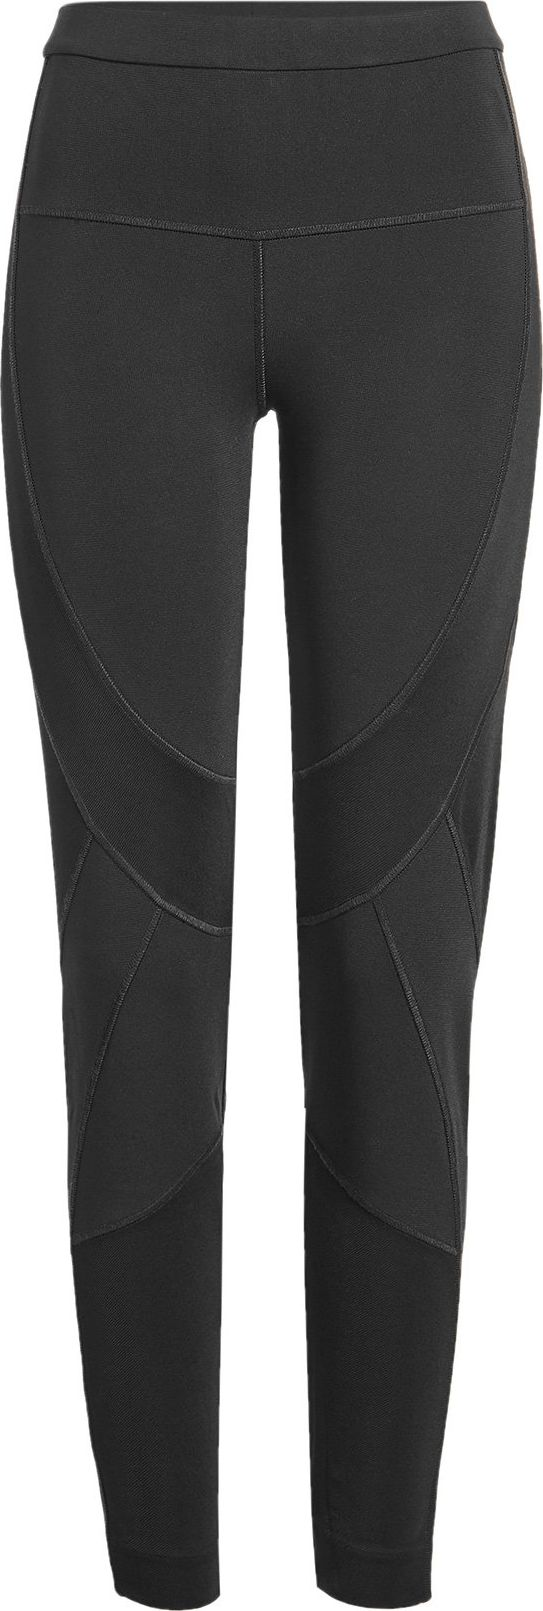 Burberry London England - Leggings with Stretch